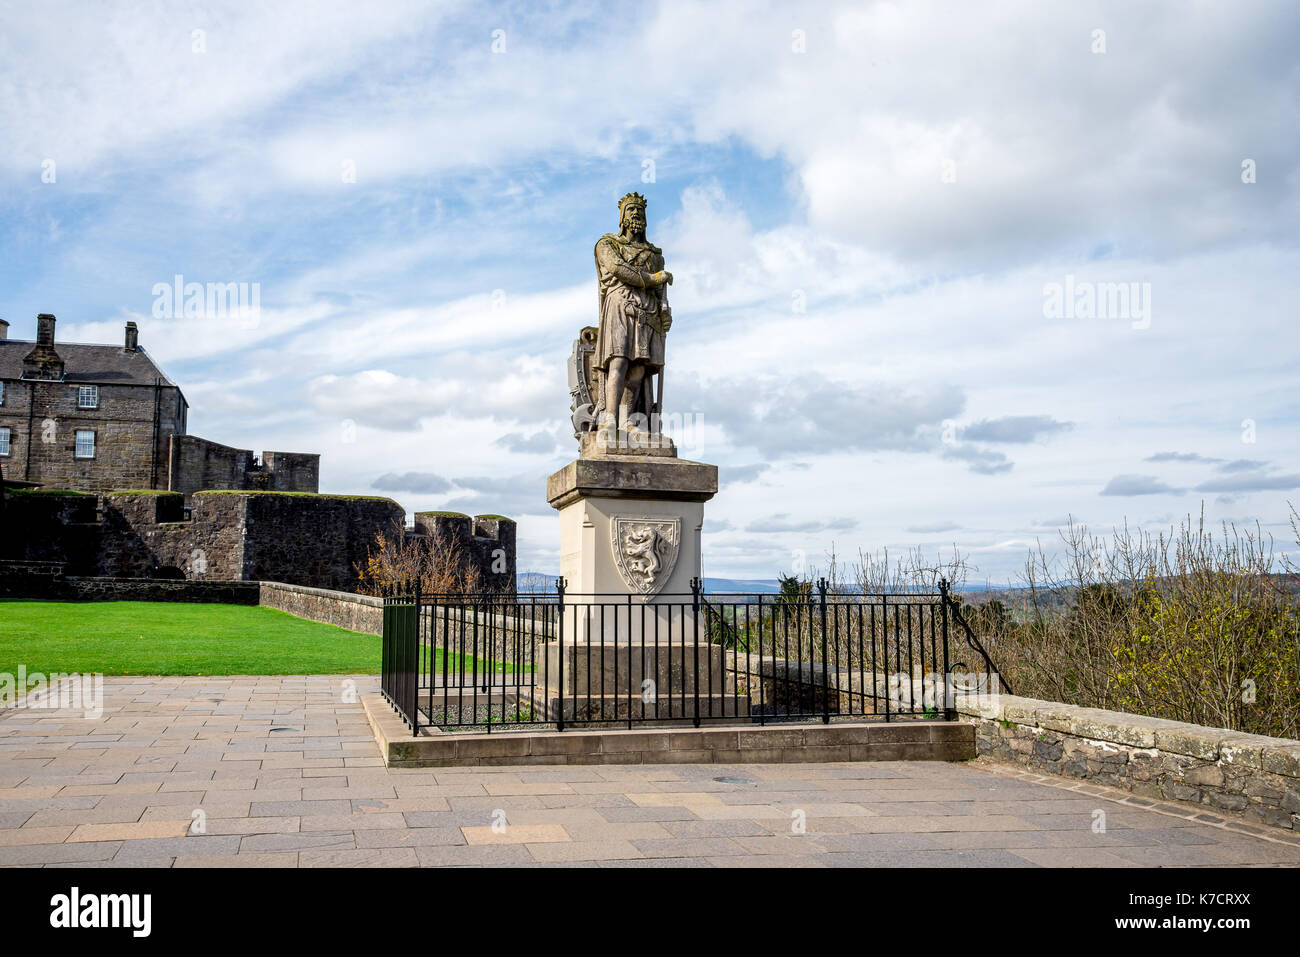 Statue of Robert the Bruce outside of Striling Castle, central Scotland - Stock Image